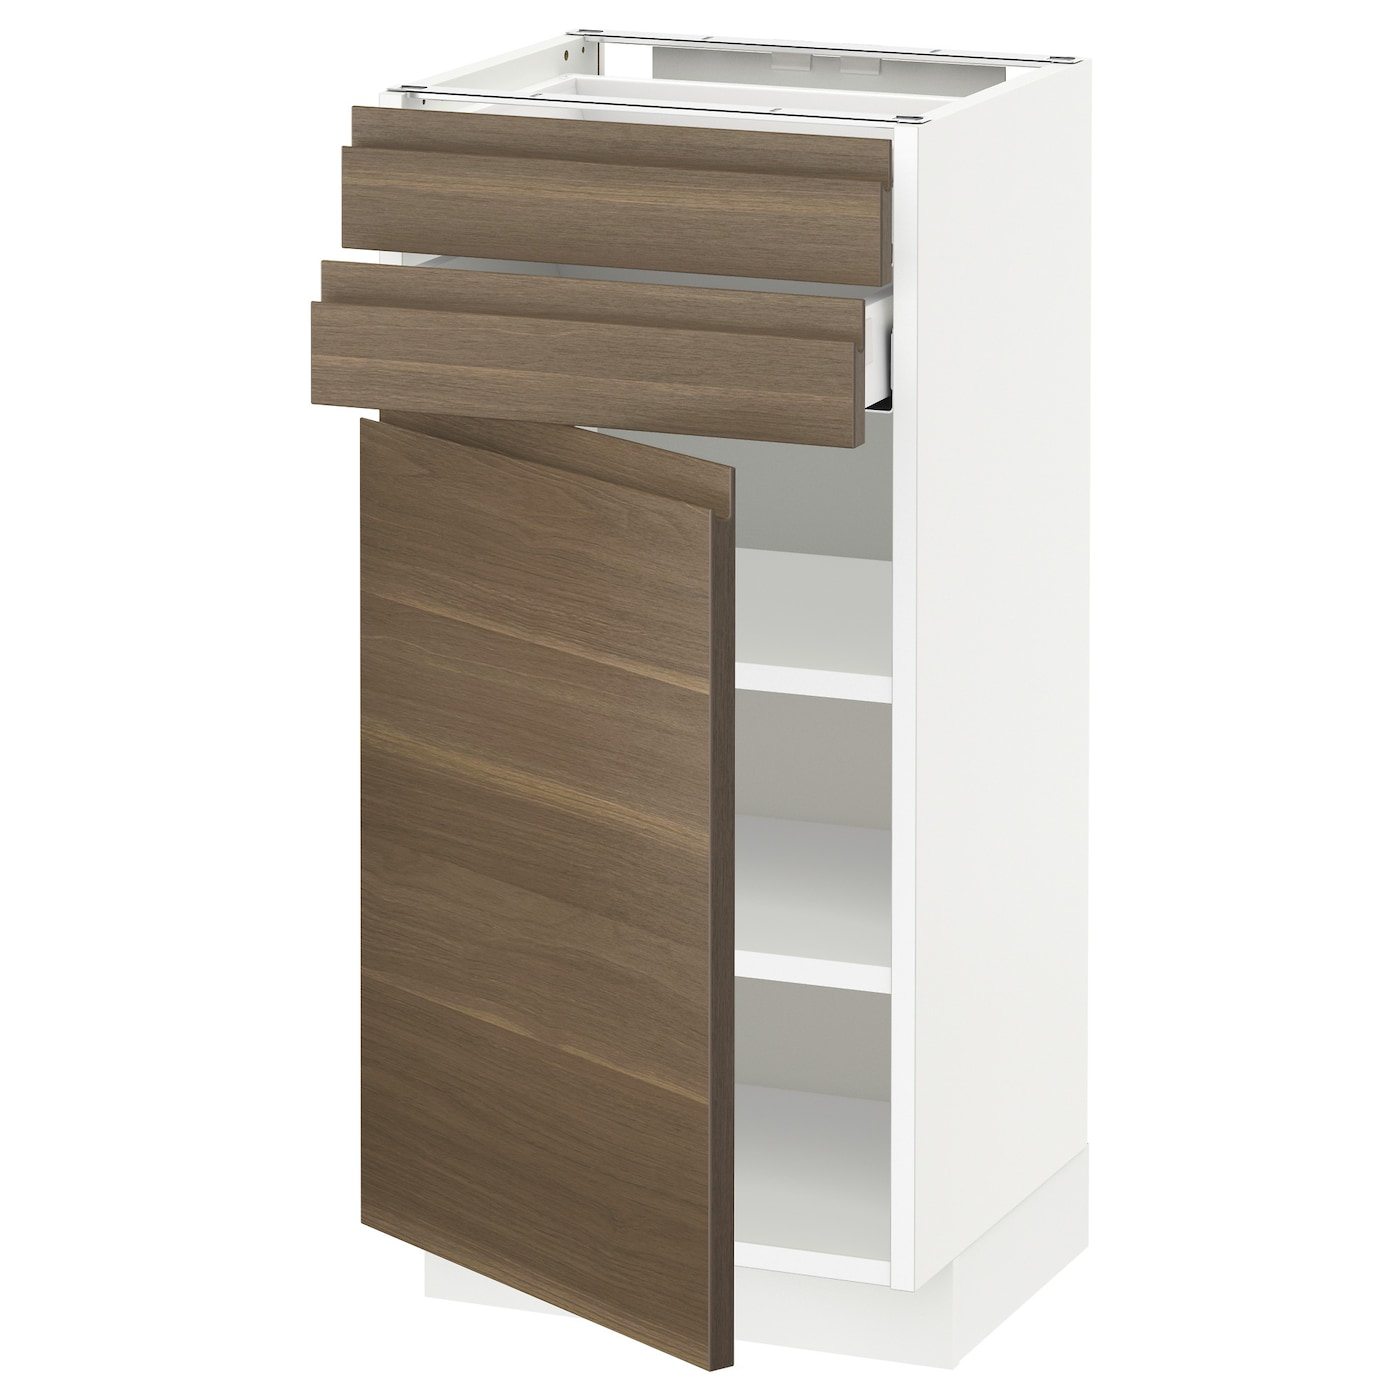 Walnut Mixed Material Ikea Kitchen: METOD/MAXIMERA Base Cabinet W Door/2 Drawers White/voxtorp